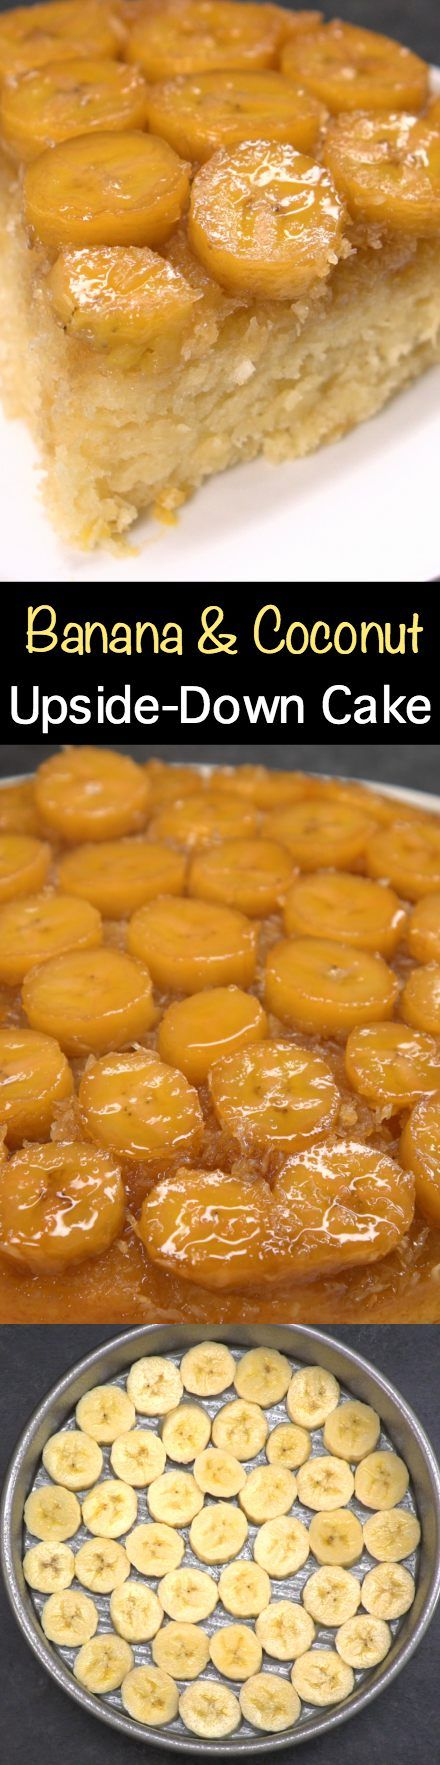 Take a trip to the tropics with this delightful Banana and Coconut Upside-Down Cake